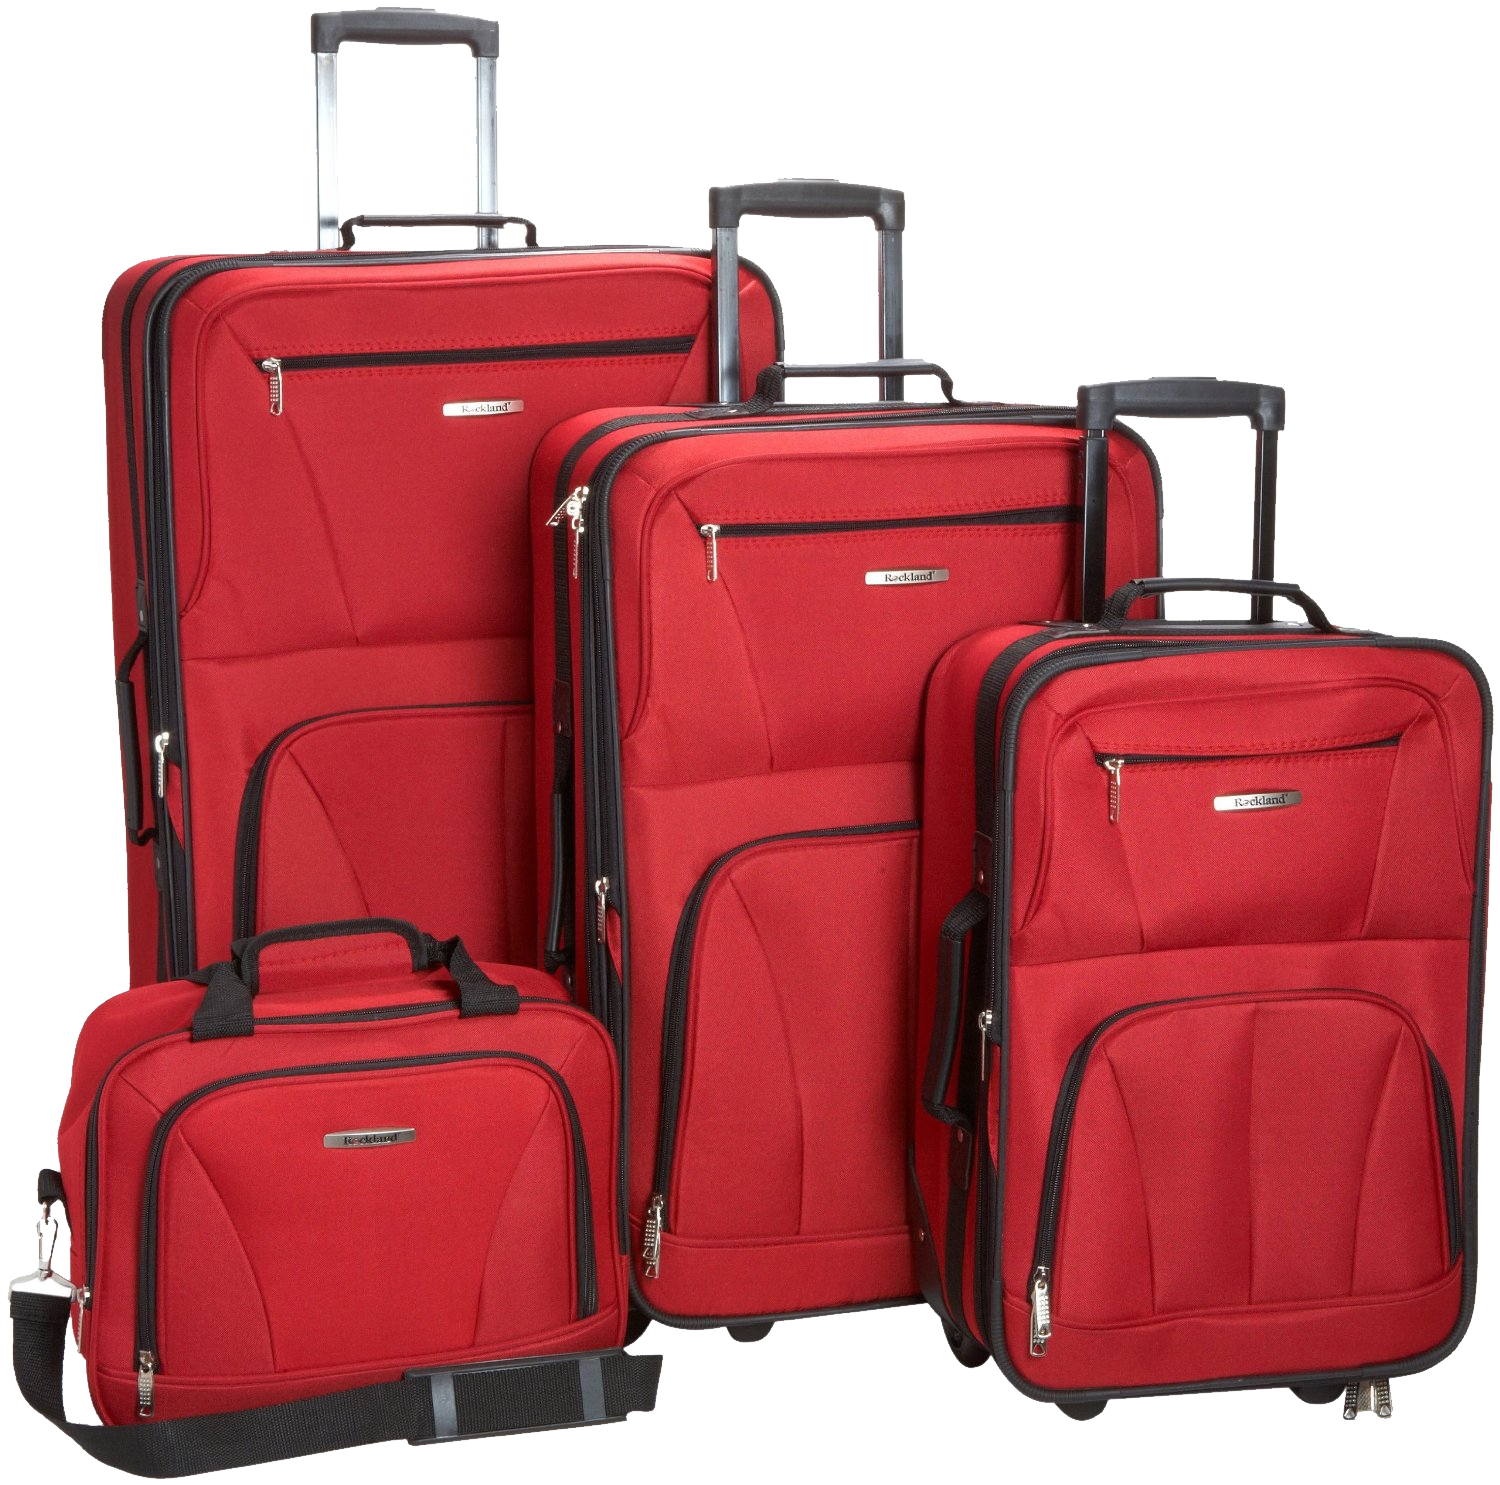 Luggage PNG image - Suitcase HD PNG